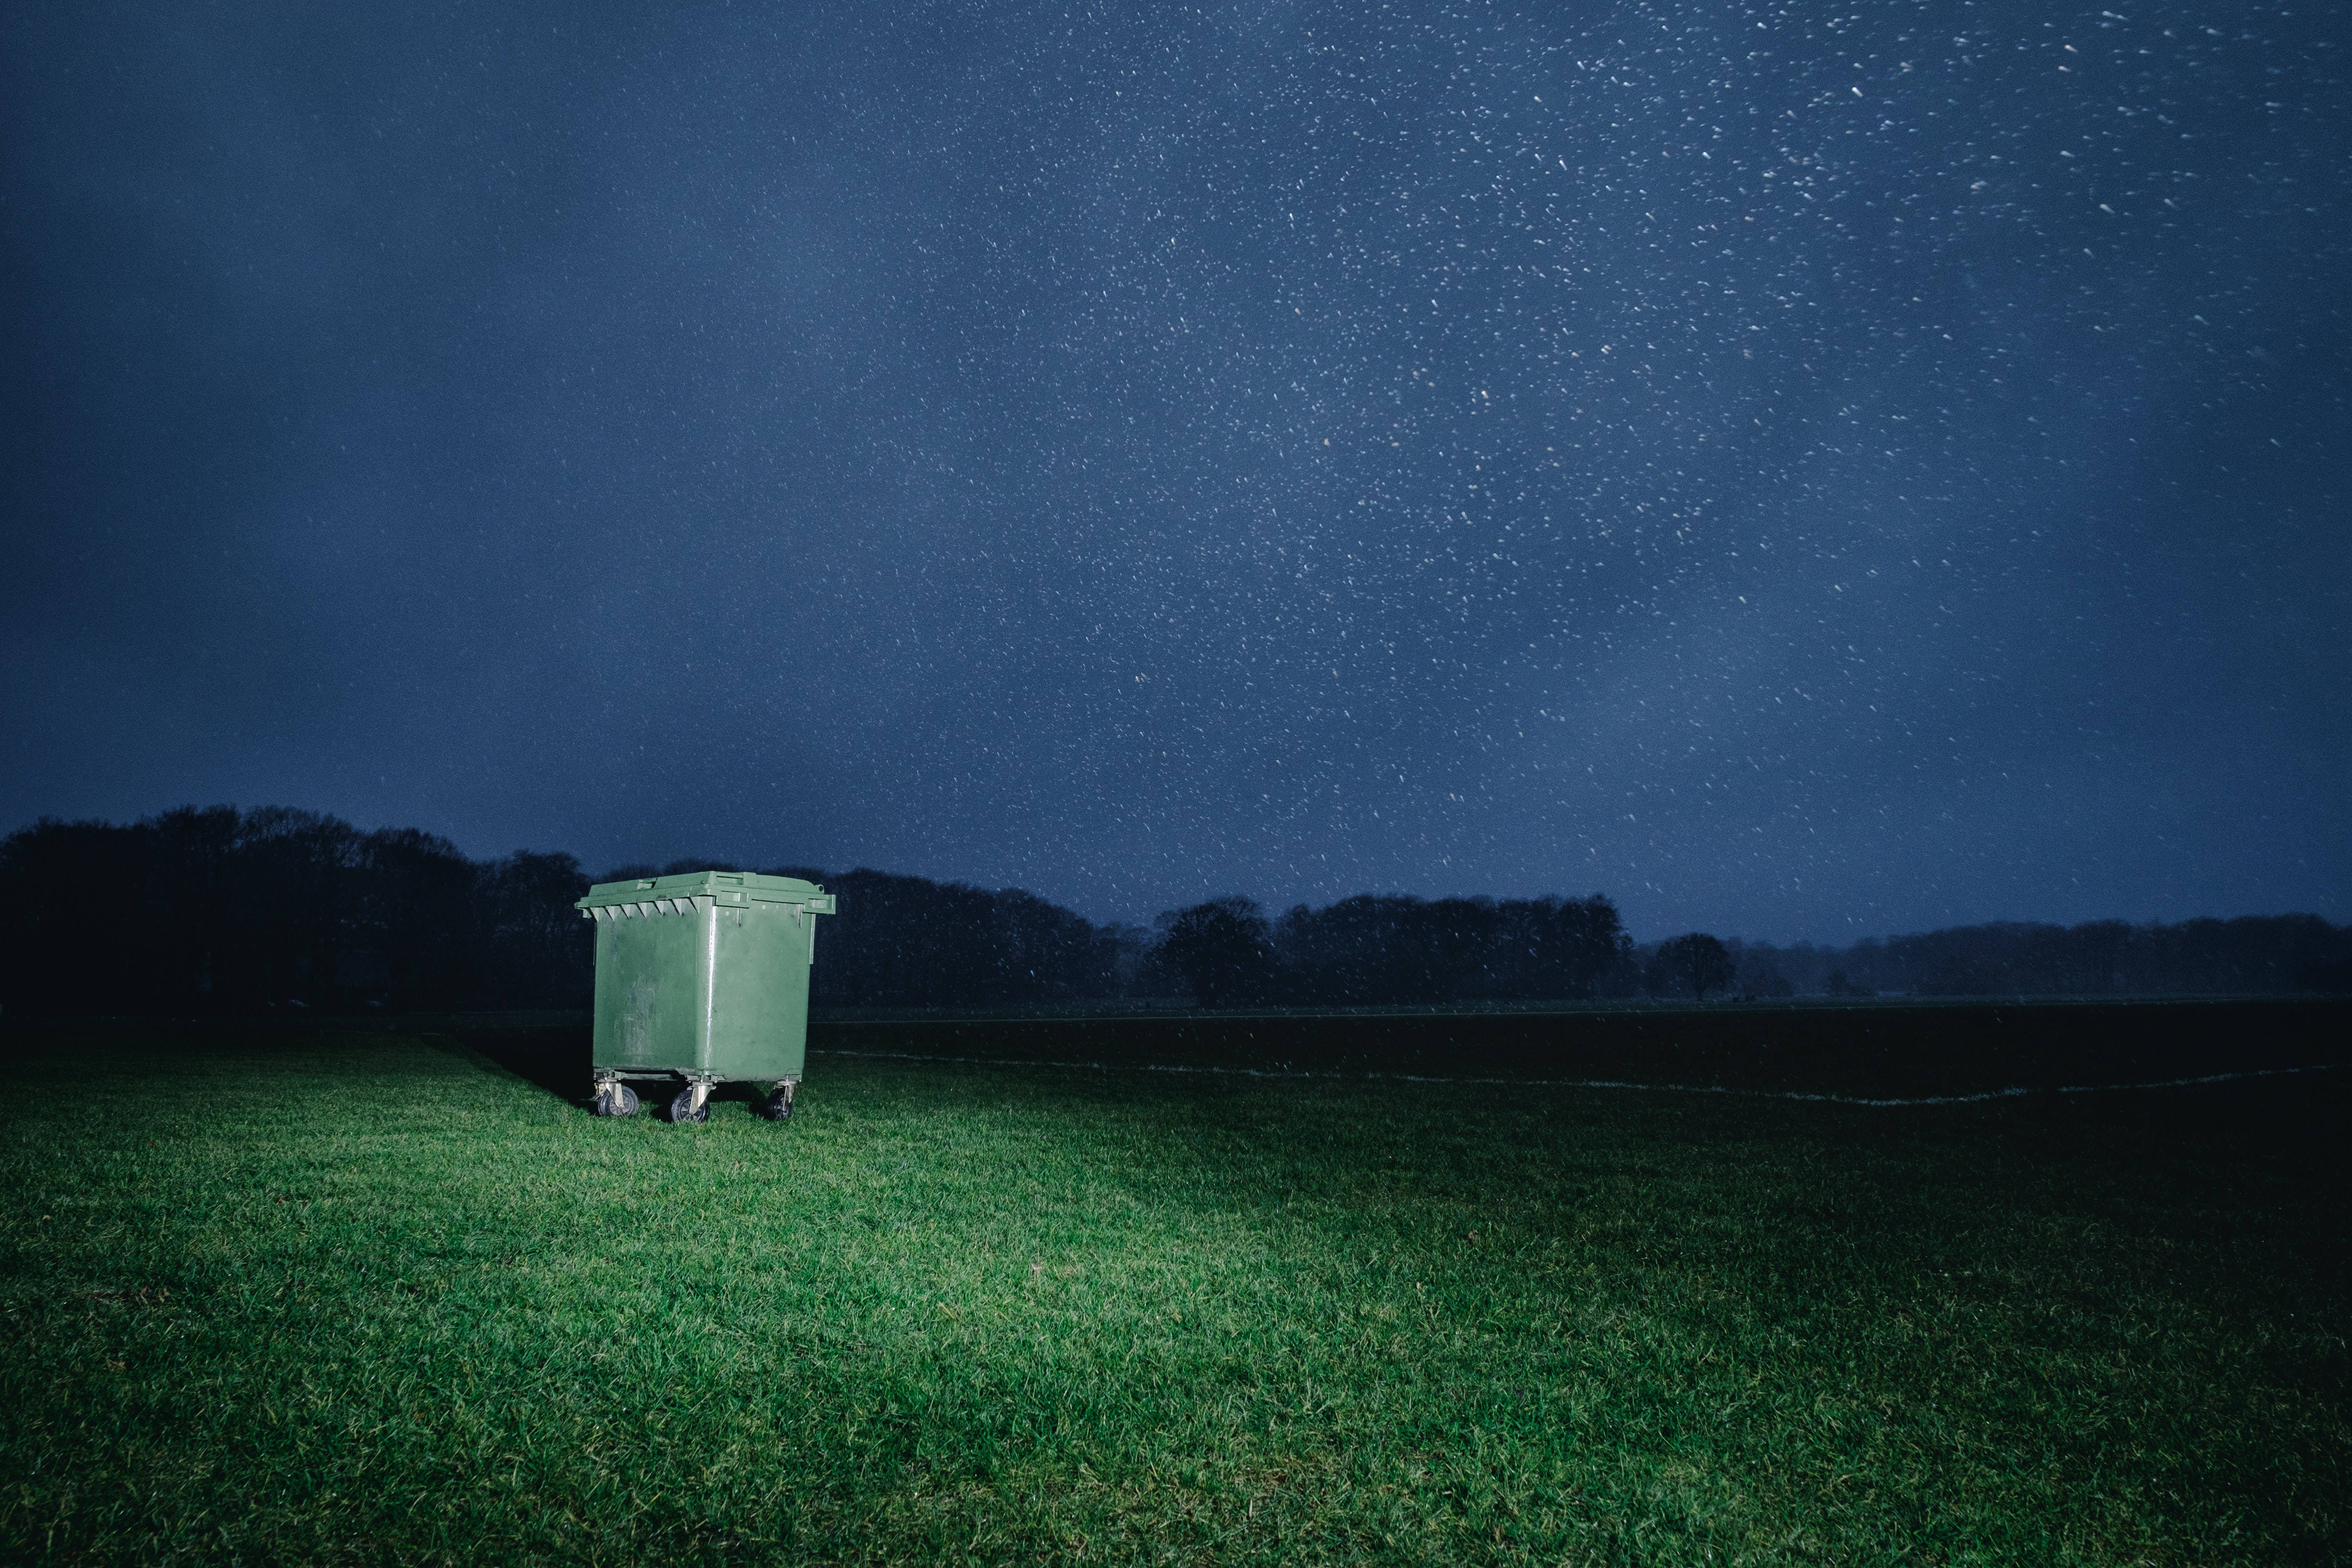 A garbage can sitting in a field under a starry night sky.